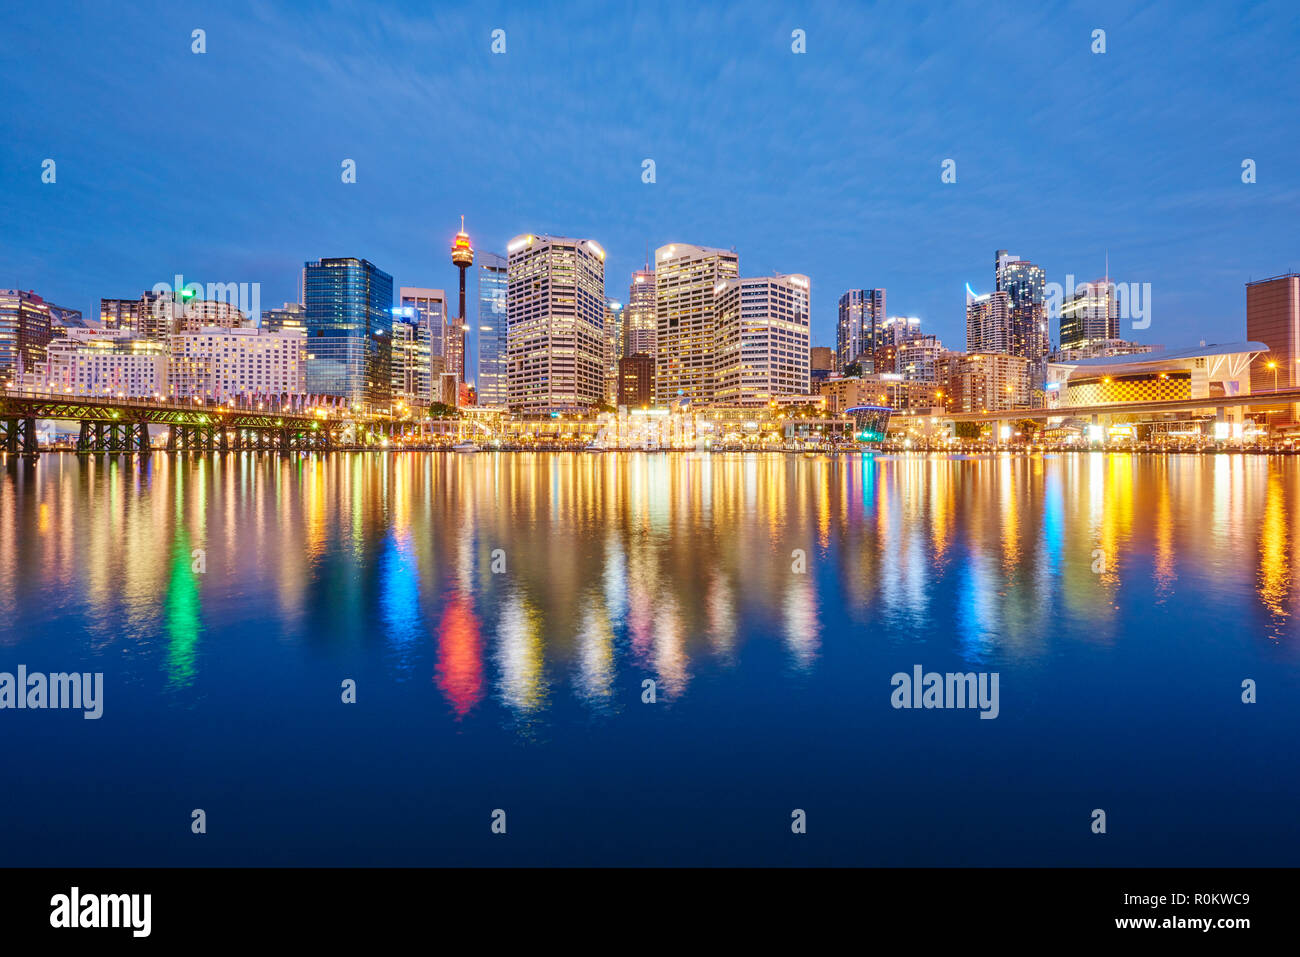 Skyline with skyscrapers in Darling Harbour at dusk, Sydney, New South Wales, Australia - Stock Image